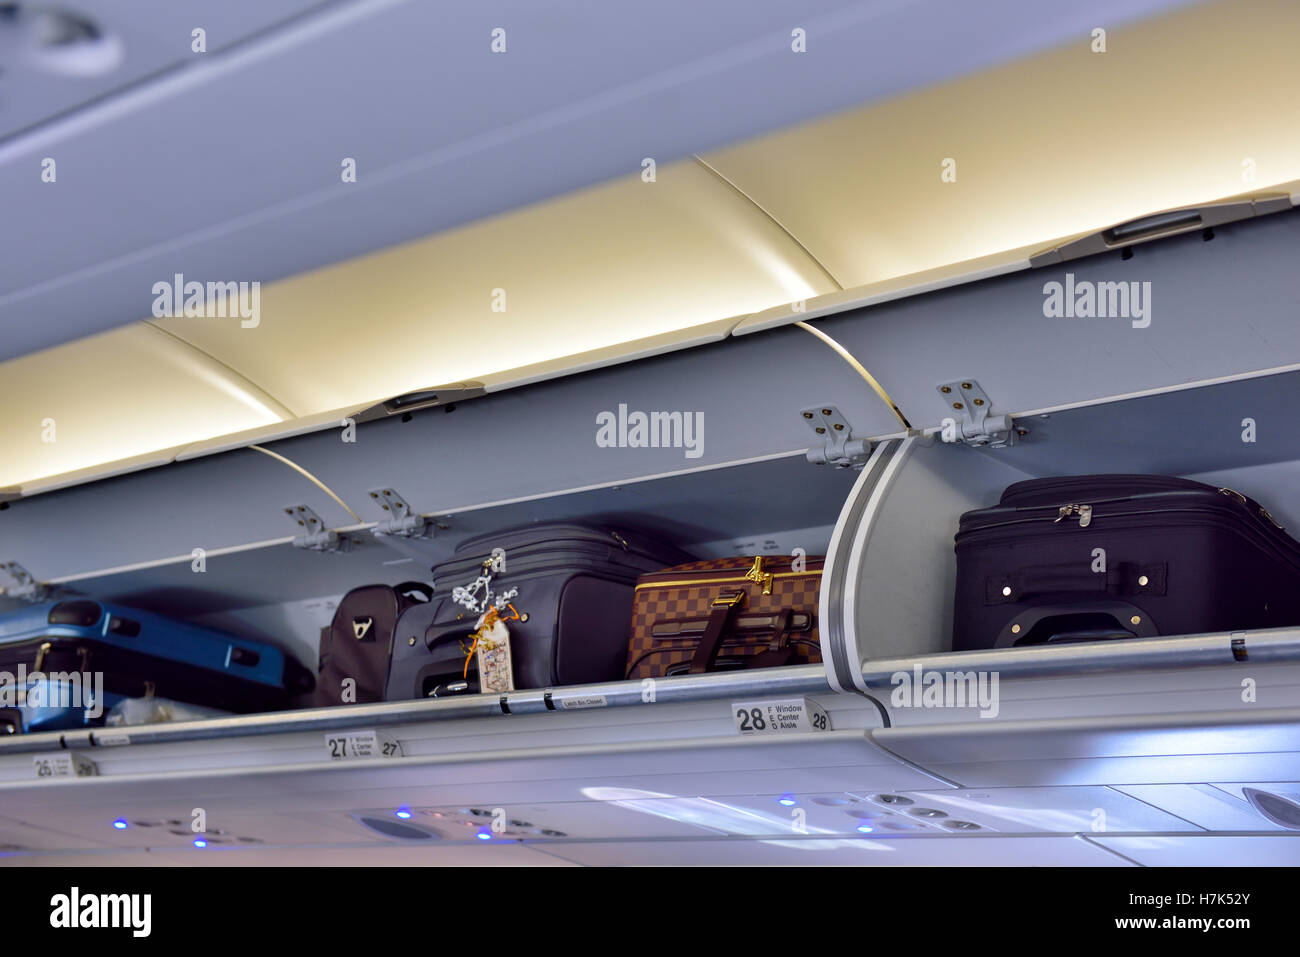 Overhead Locker In Passenger Airplane With Hand Luggage